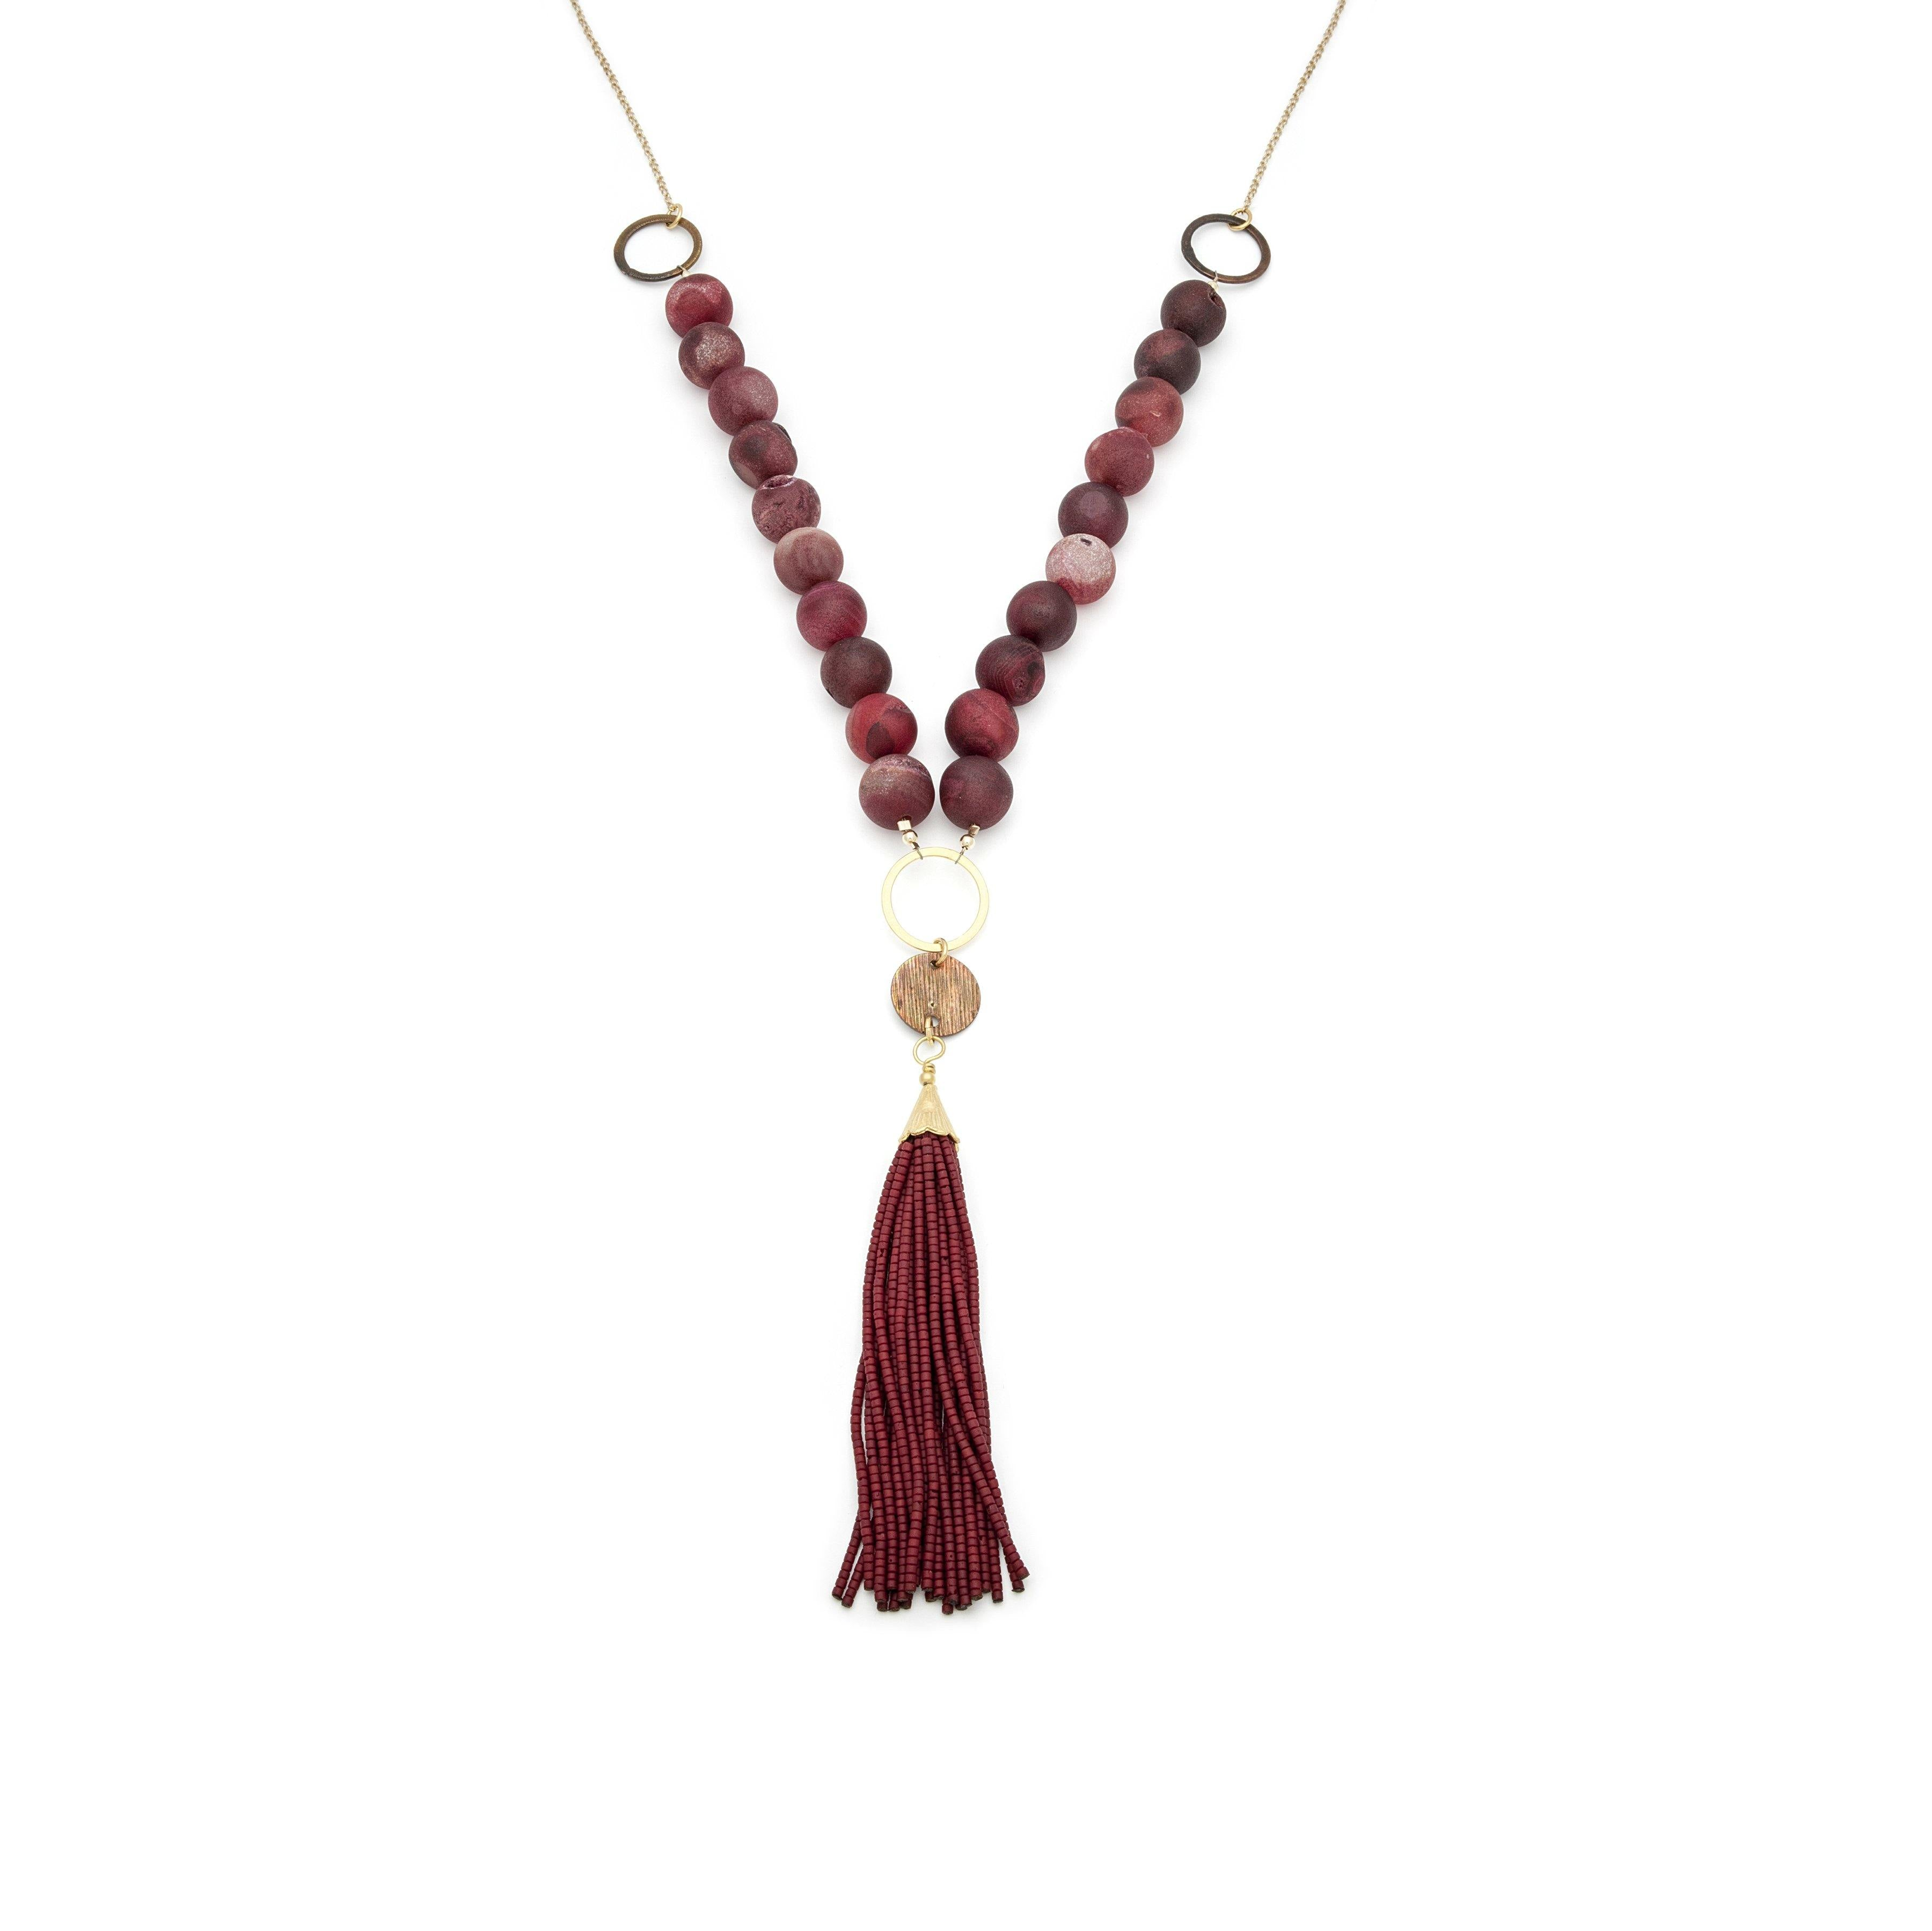 Geode Tassel Gold Necklace - Irit Sorokin Designs Canadian handmade jewelry